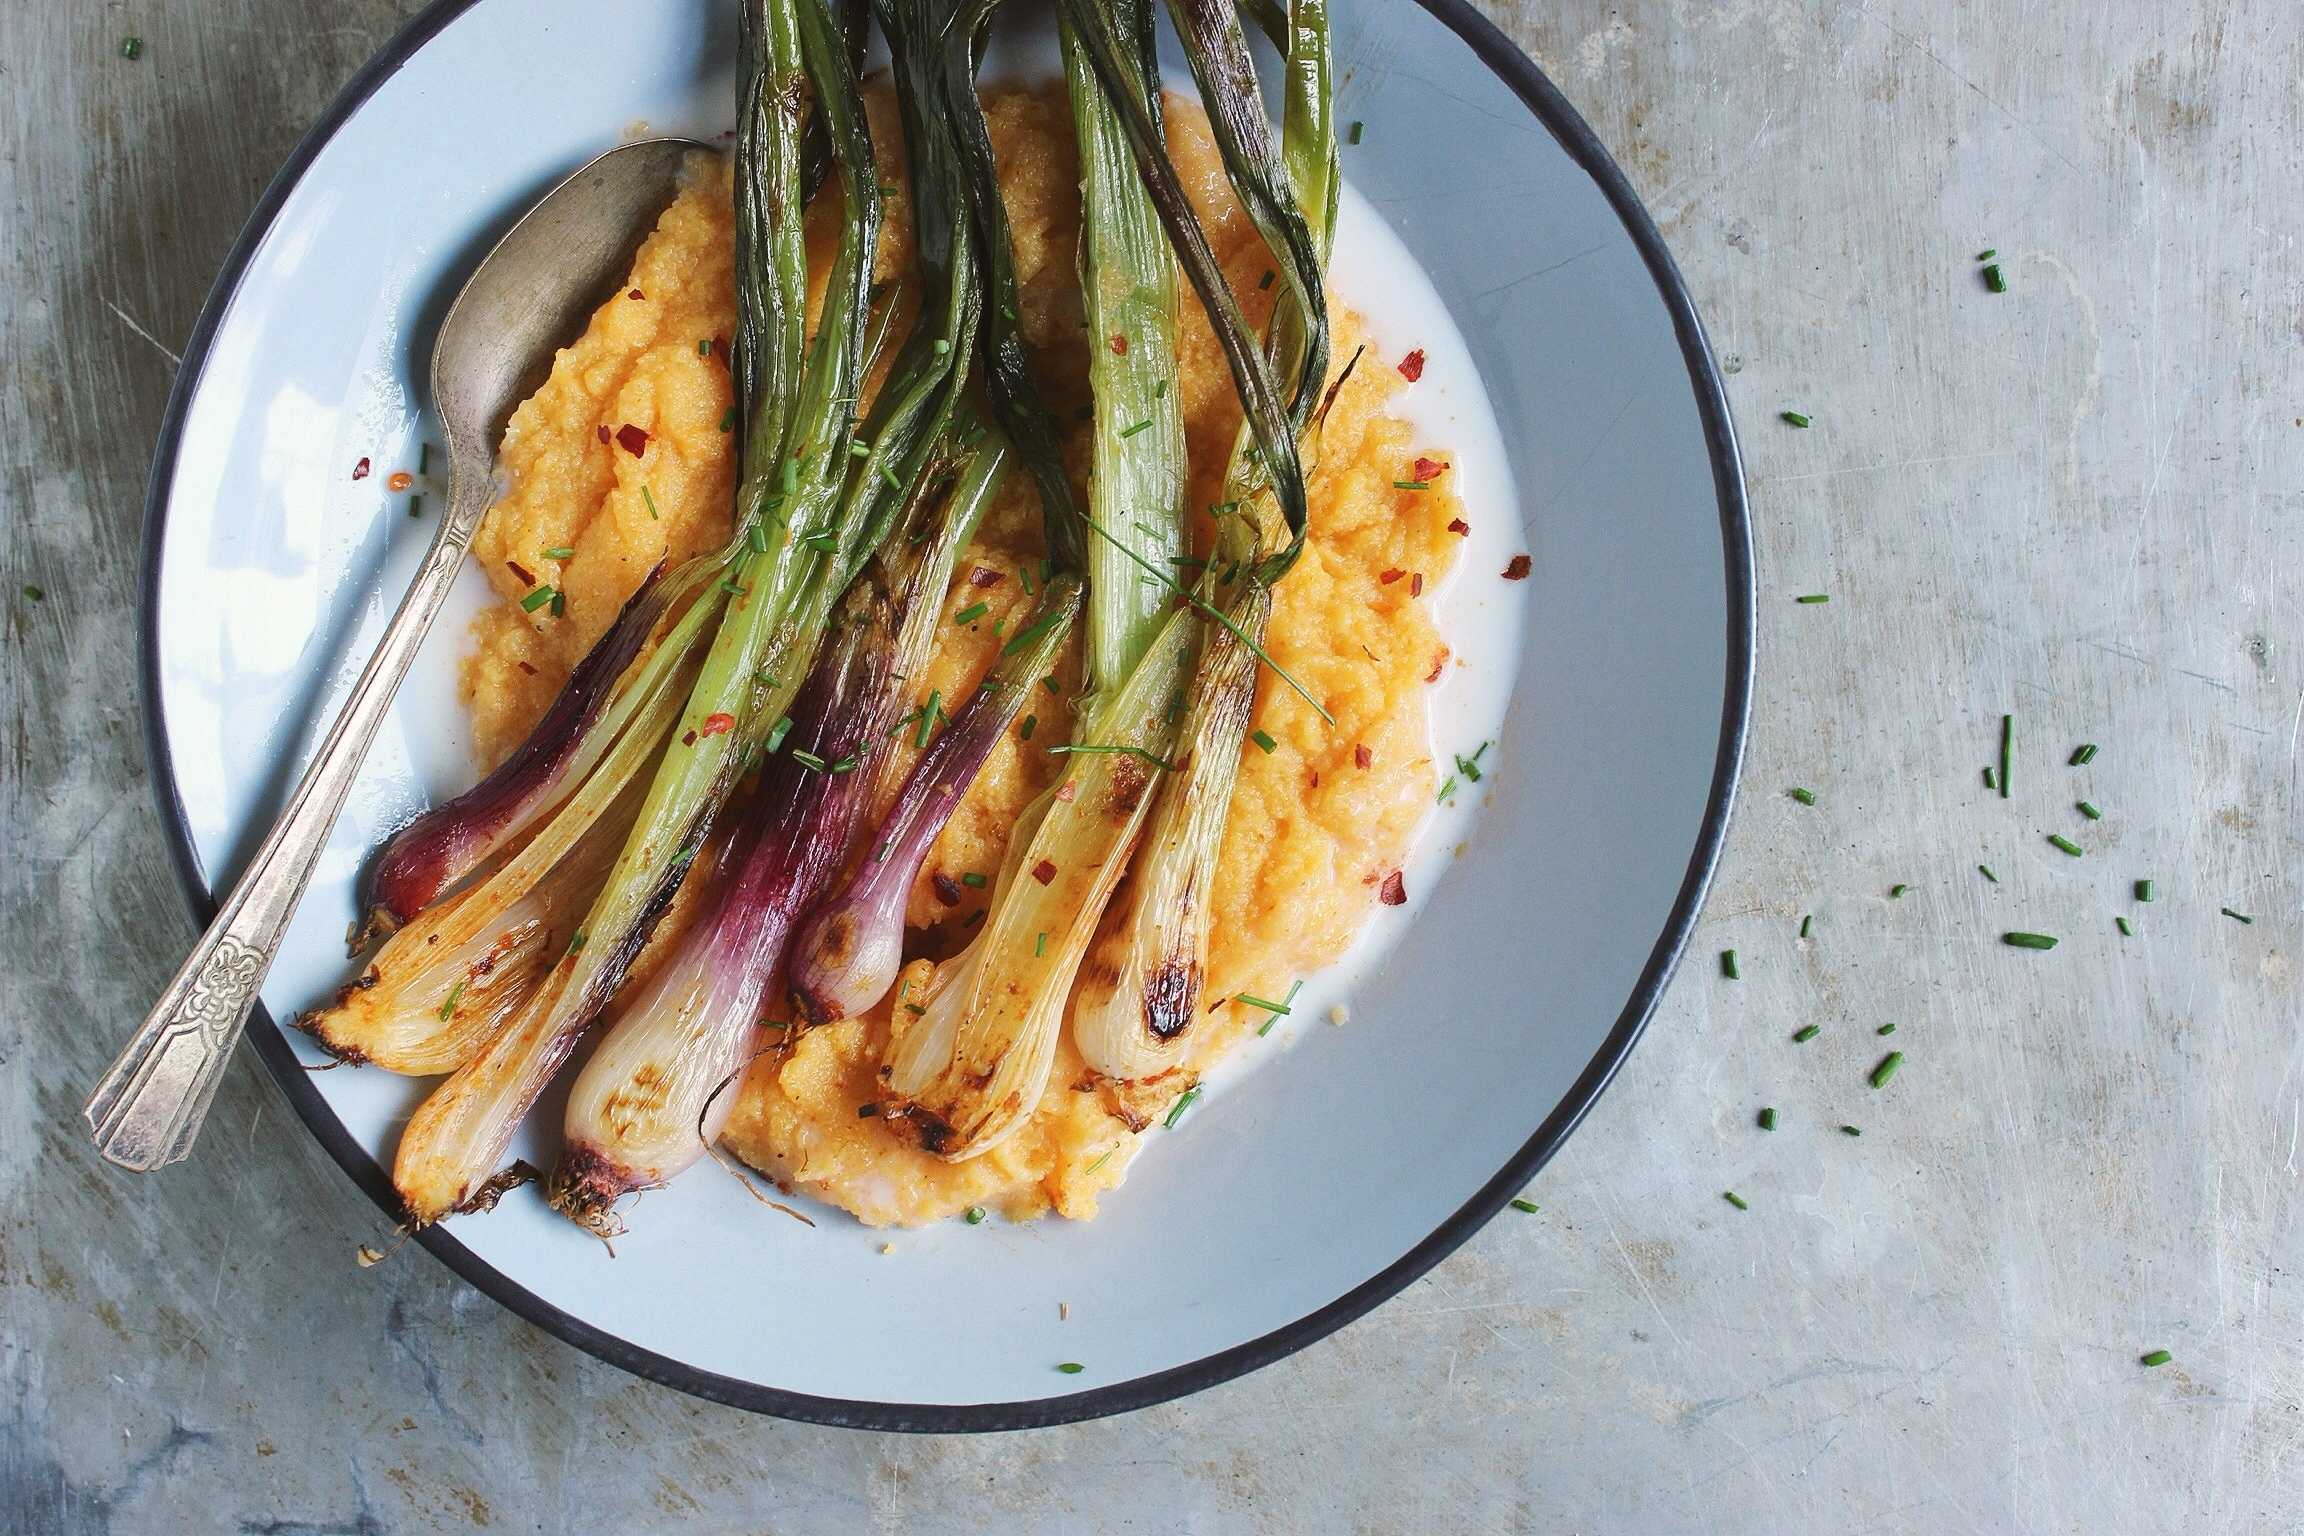 Red Curry Roasted Spring Onions with Creamy Polenta. Photo by Sherrie of With Food + Love.